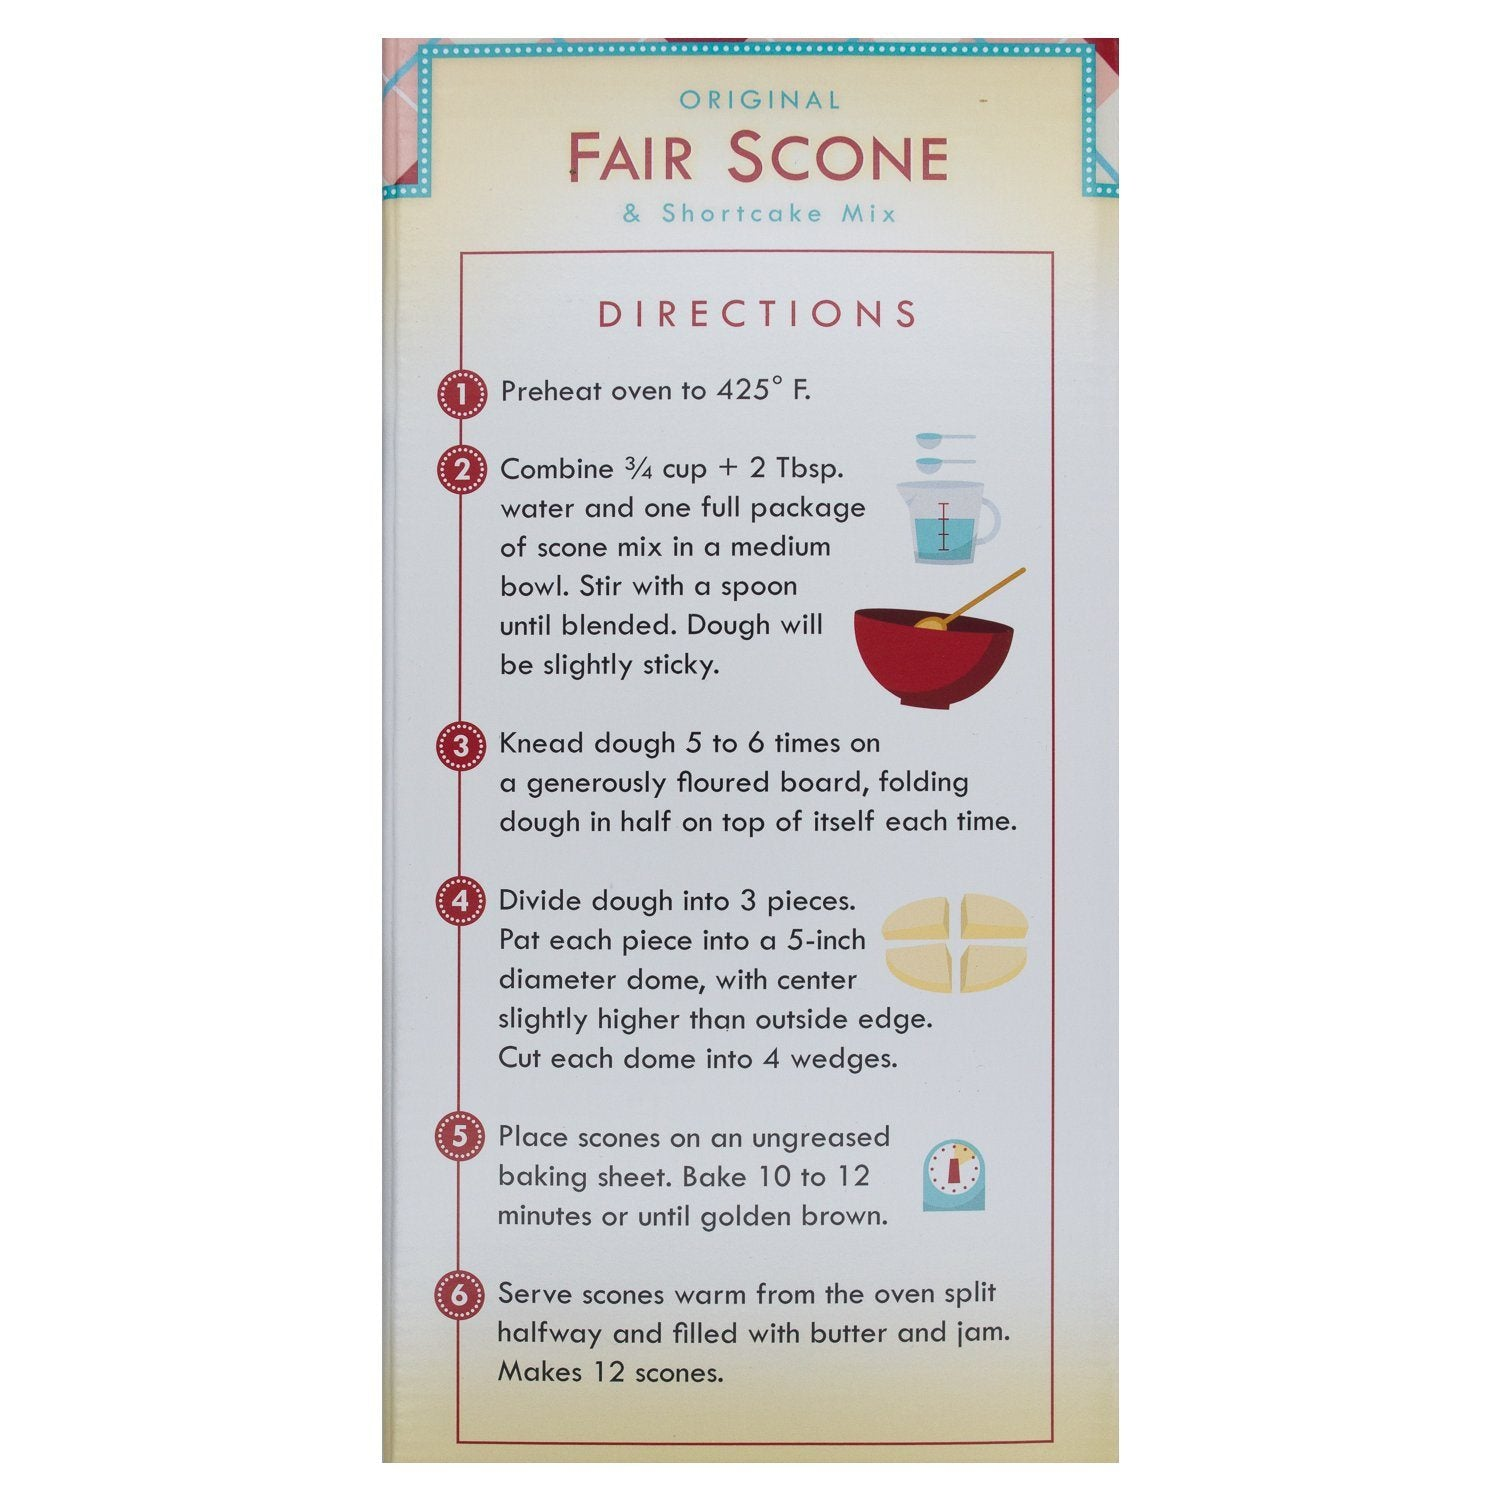 Fisher Original Fair Scone & Shortcake Mix Fisher